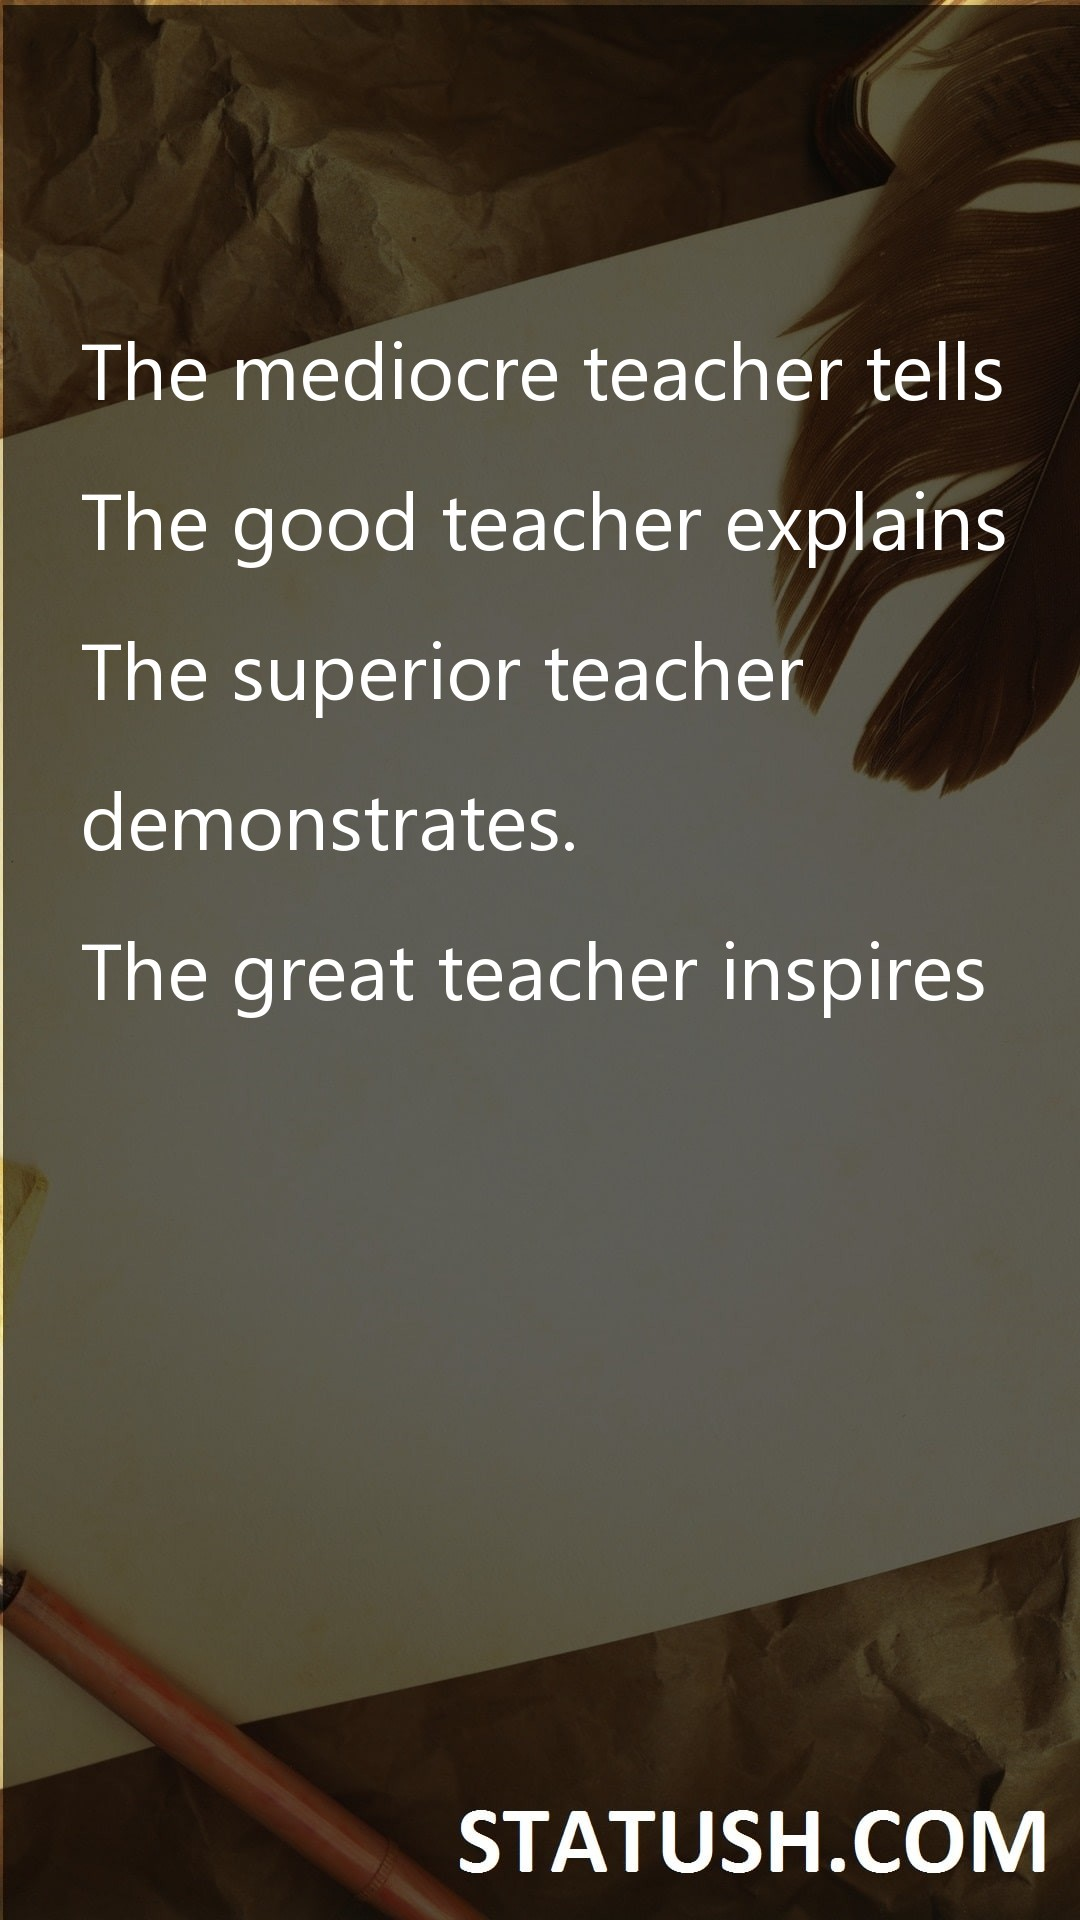 The mediocre teacher tells